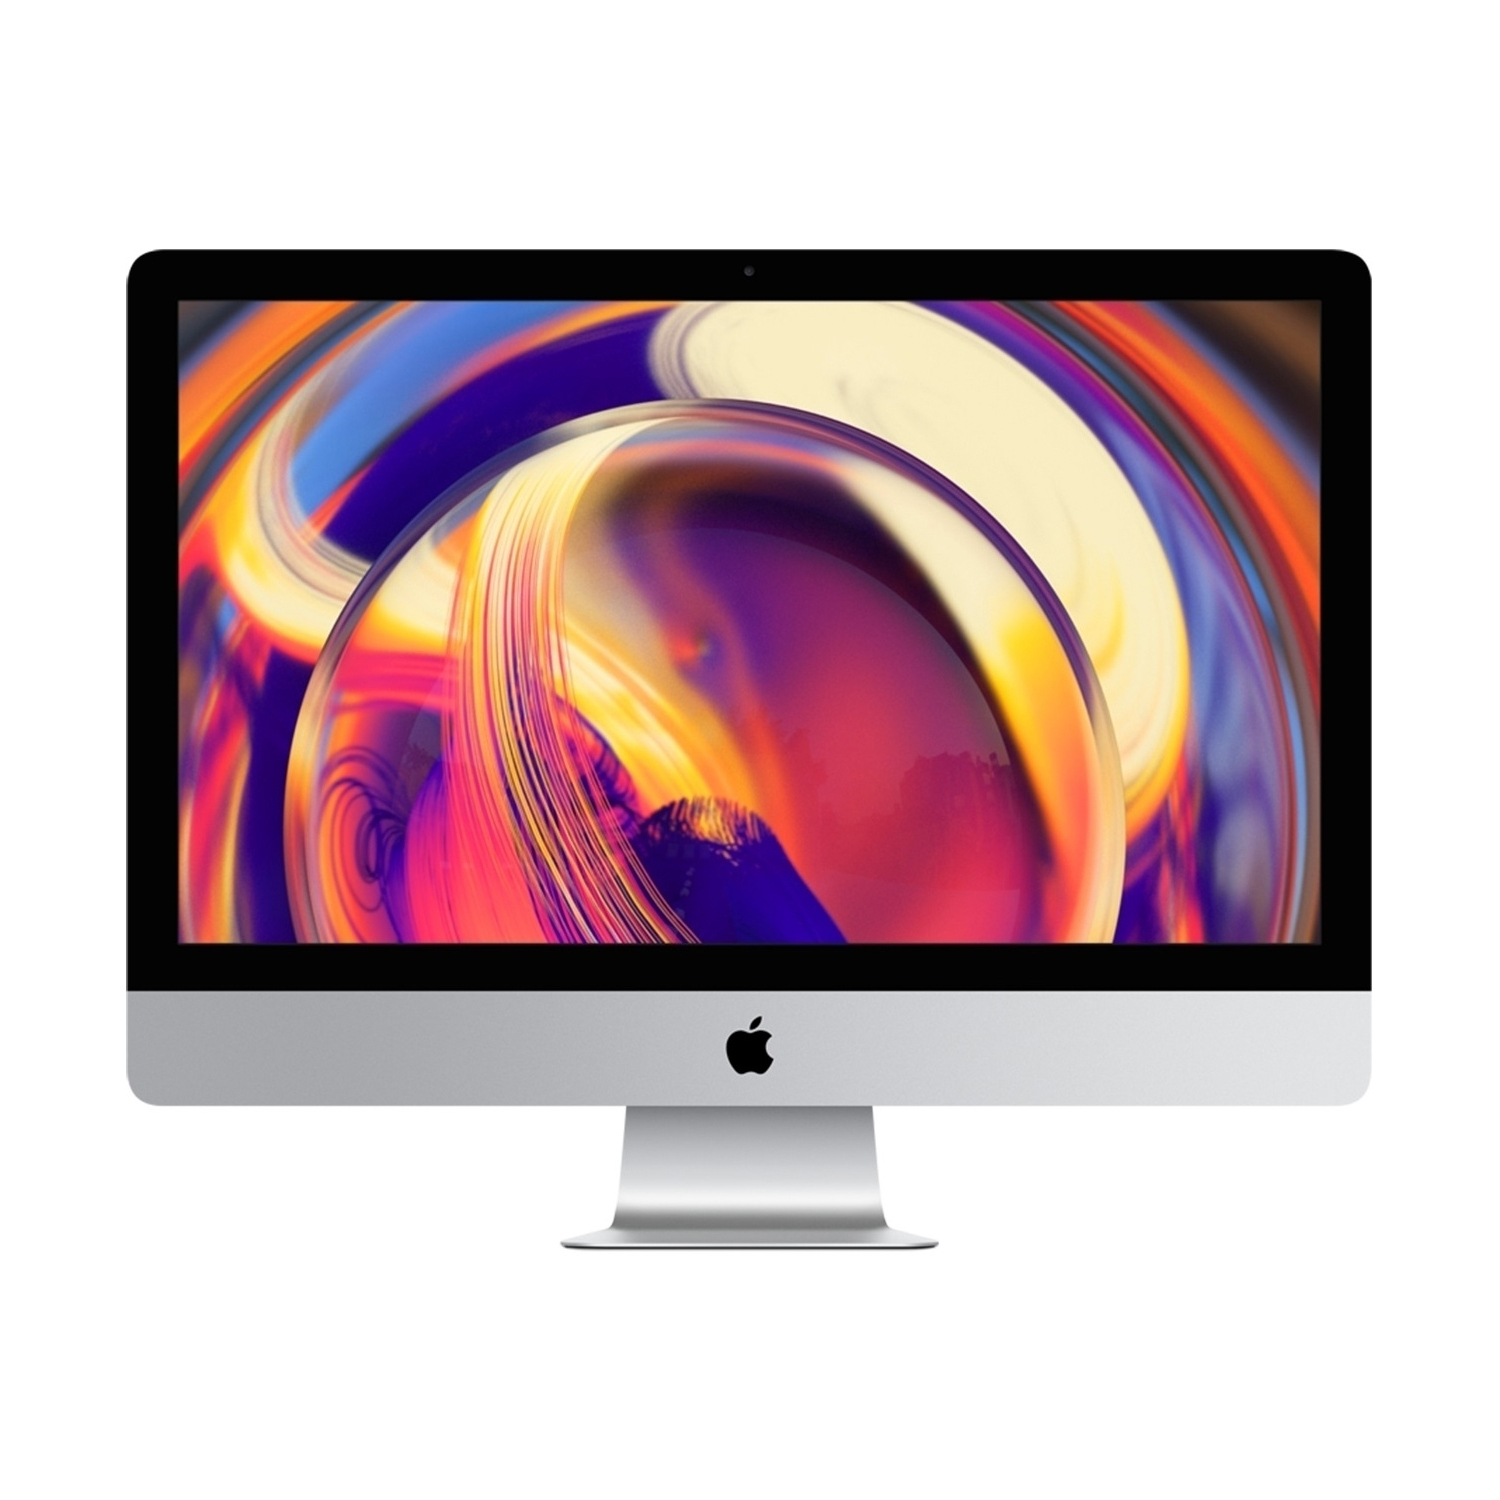 Desktops Apple iMac 27inch 8th Generation MacOS 5K Display i5 Processor 3.0GHz 8GB Ref MRQY2B/A